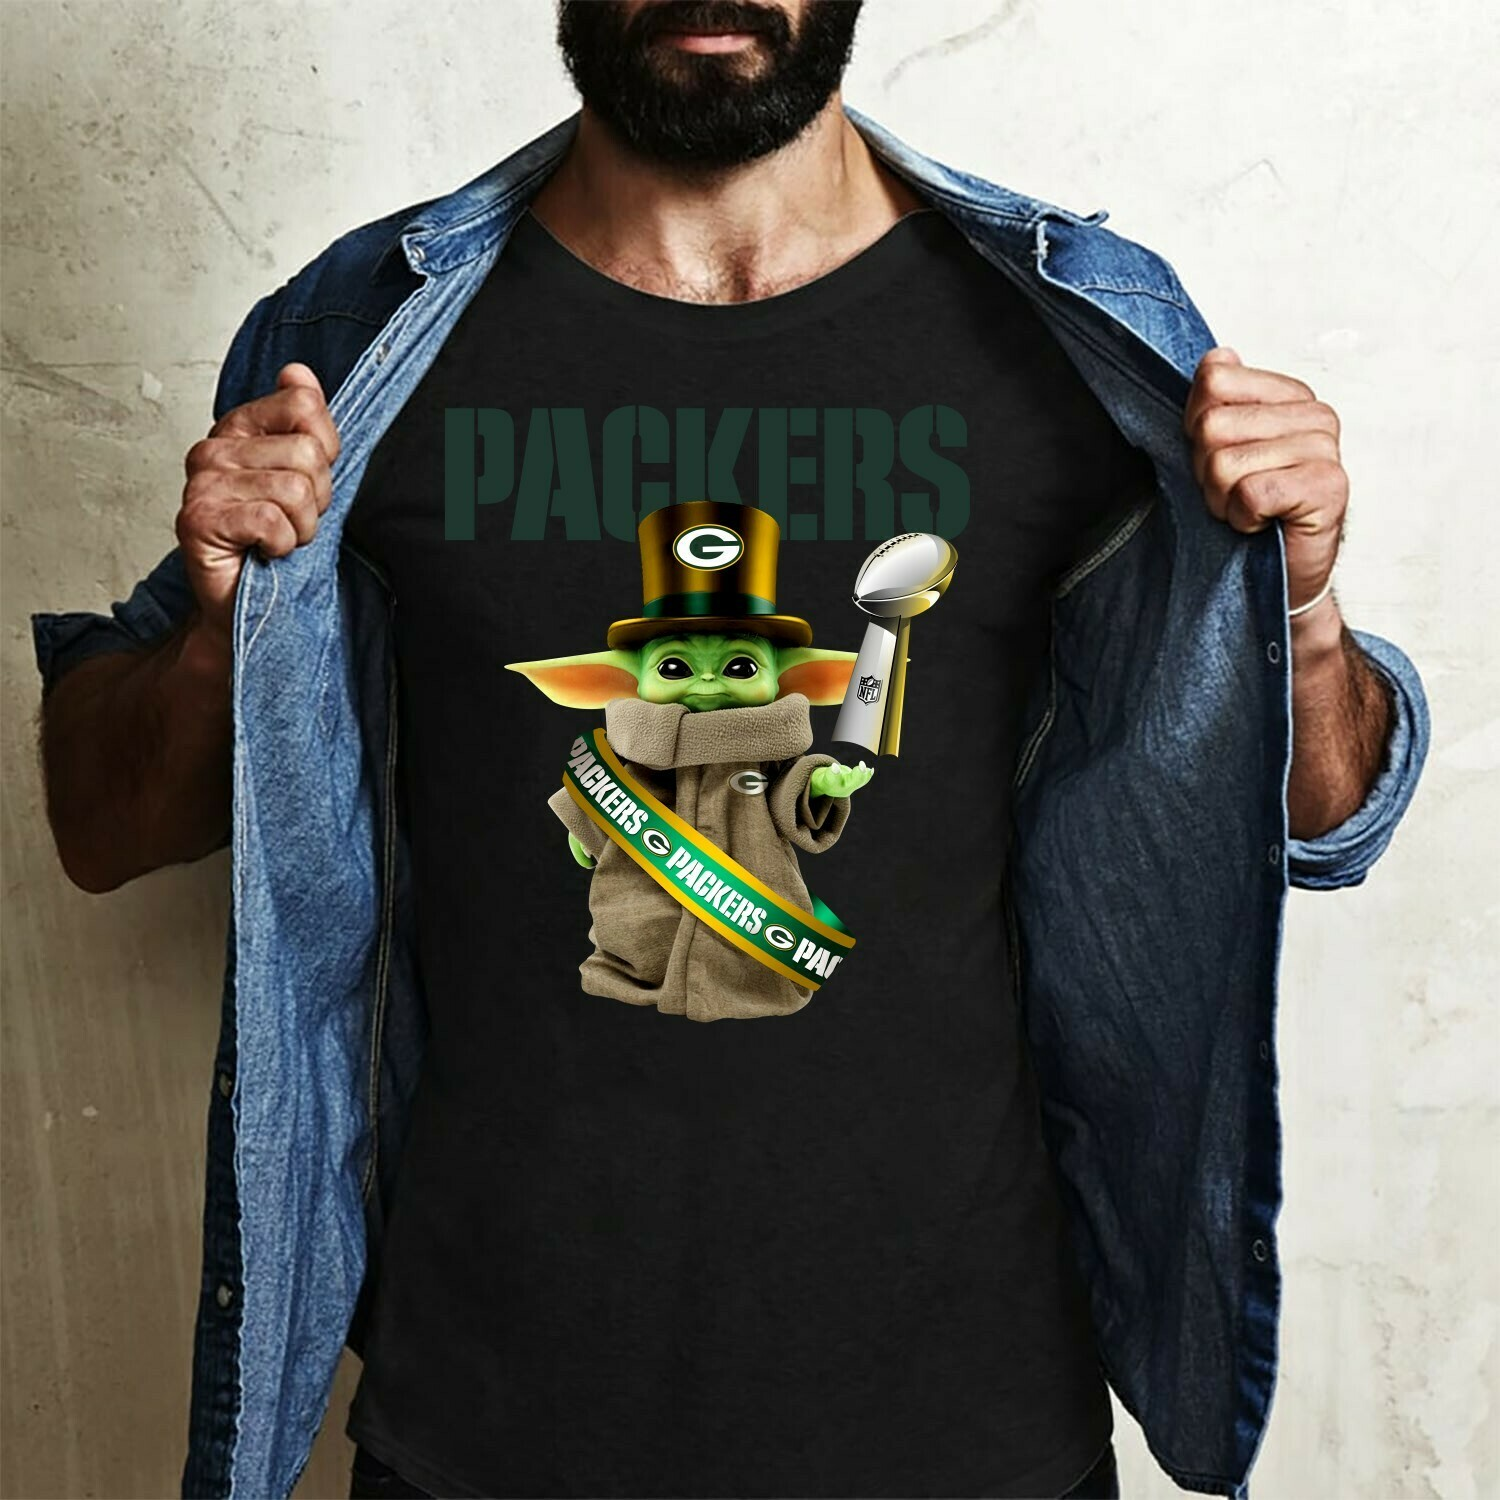 Baby Yoda The Mandalorian with death Star Wars Movie Green Bay Packers Baby Yoda Super Bowl LIV St Patrick's day Gift  T-Shirt Hoodie Sweatshirt Sweater Tee Kids Youth Gifts Jolly Family Gifts